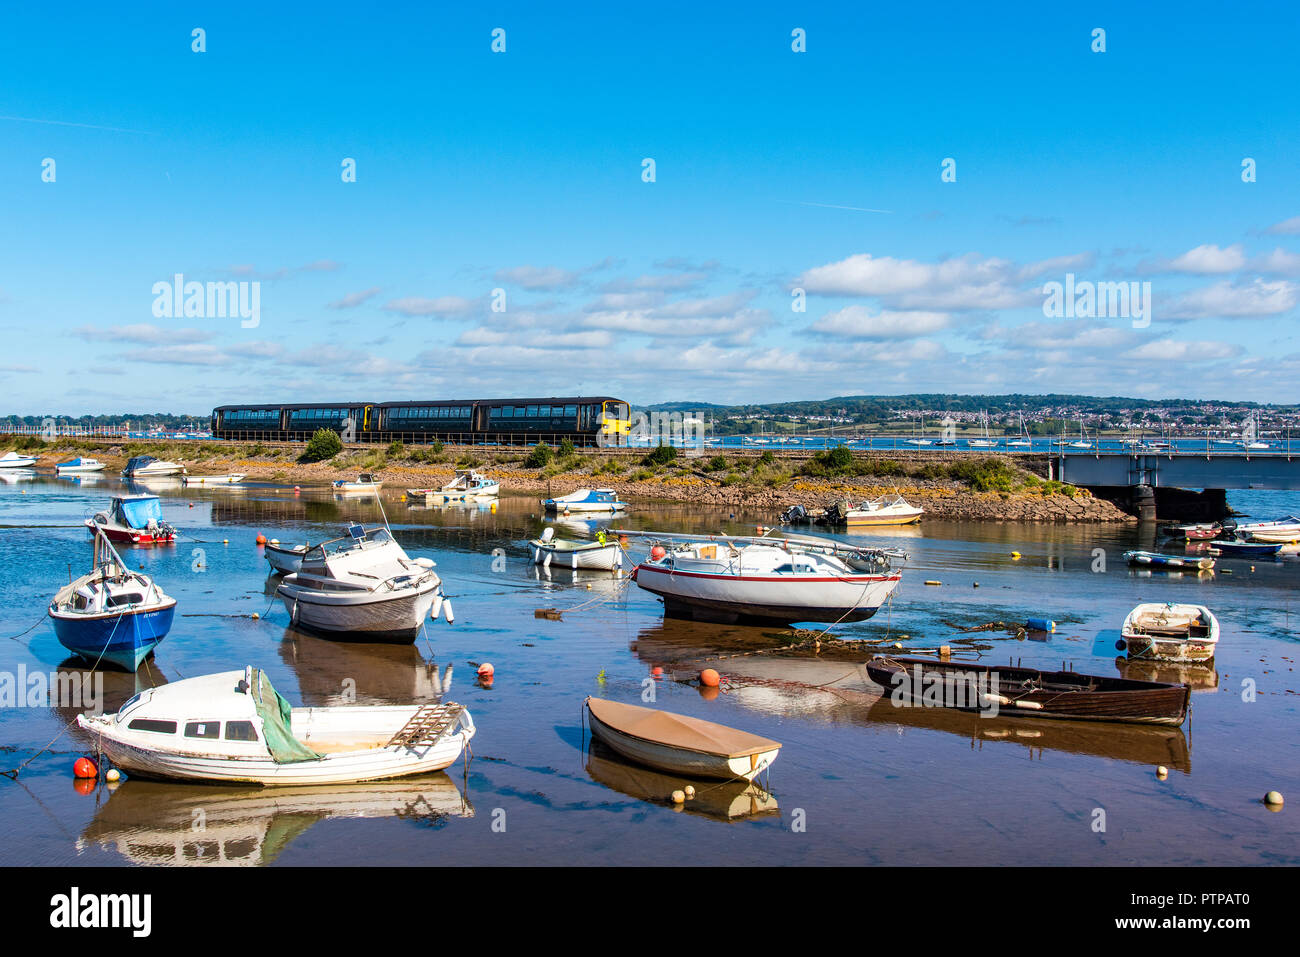 COCKWOOD, STARCROSS, DEVON, UK - First Great Western class 143 Pacer train 143621 passes the harbour at Cockwood on the Exe Estuary. - Stock Image